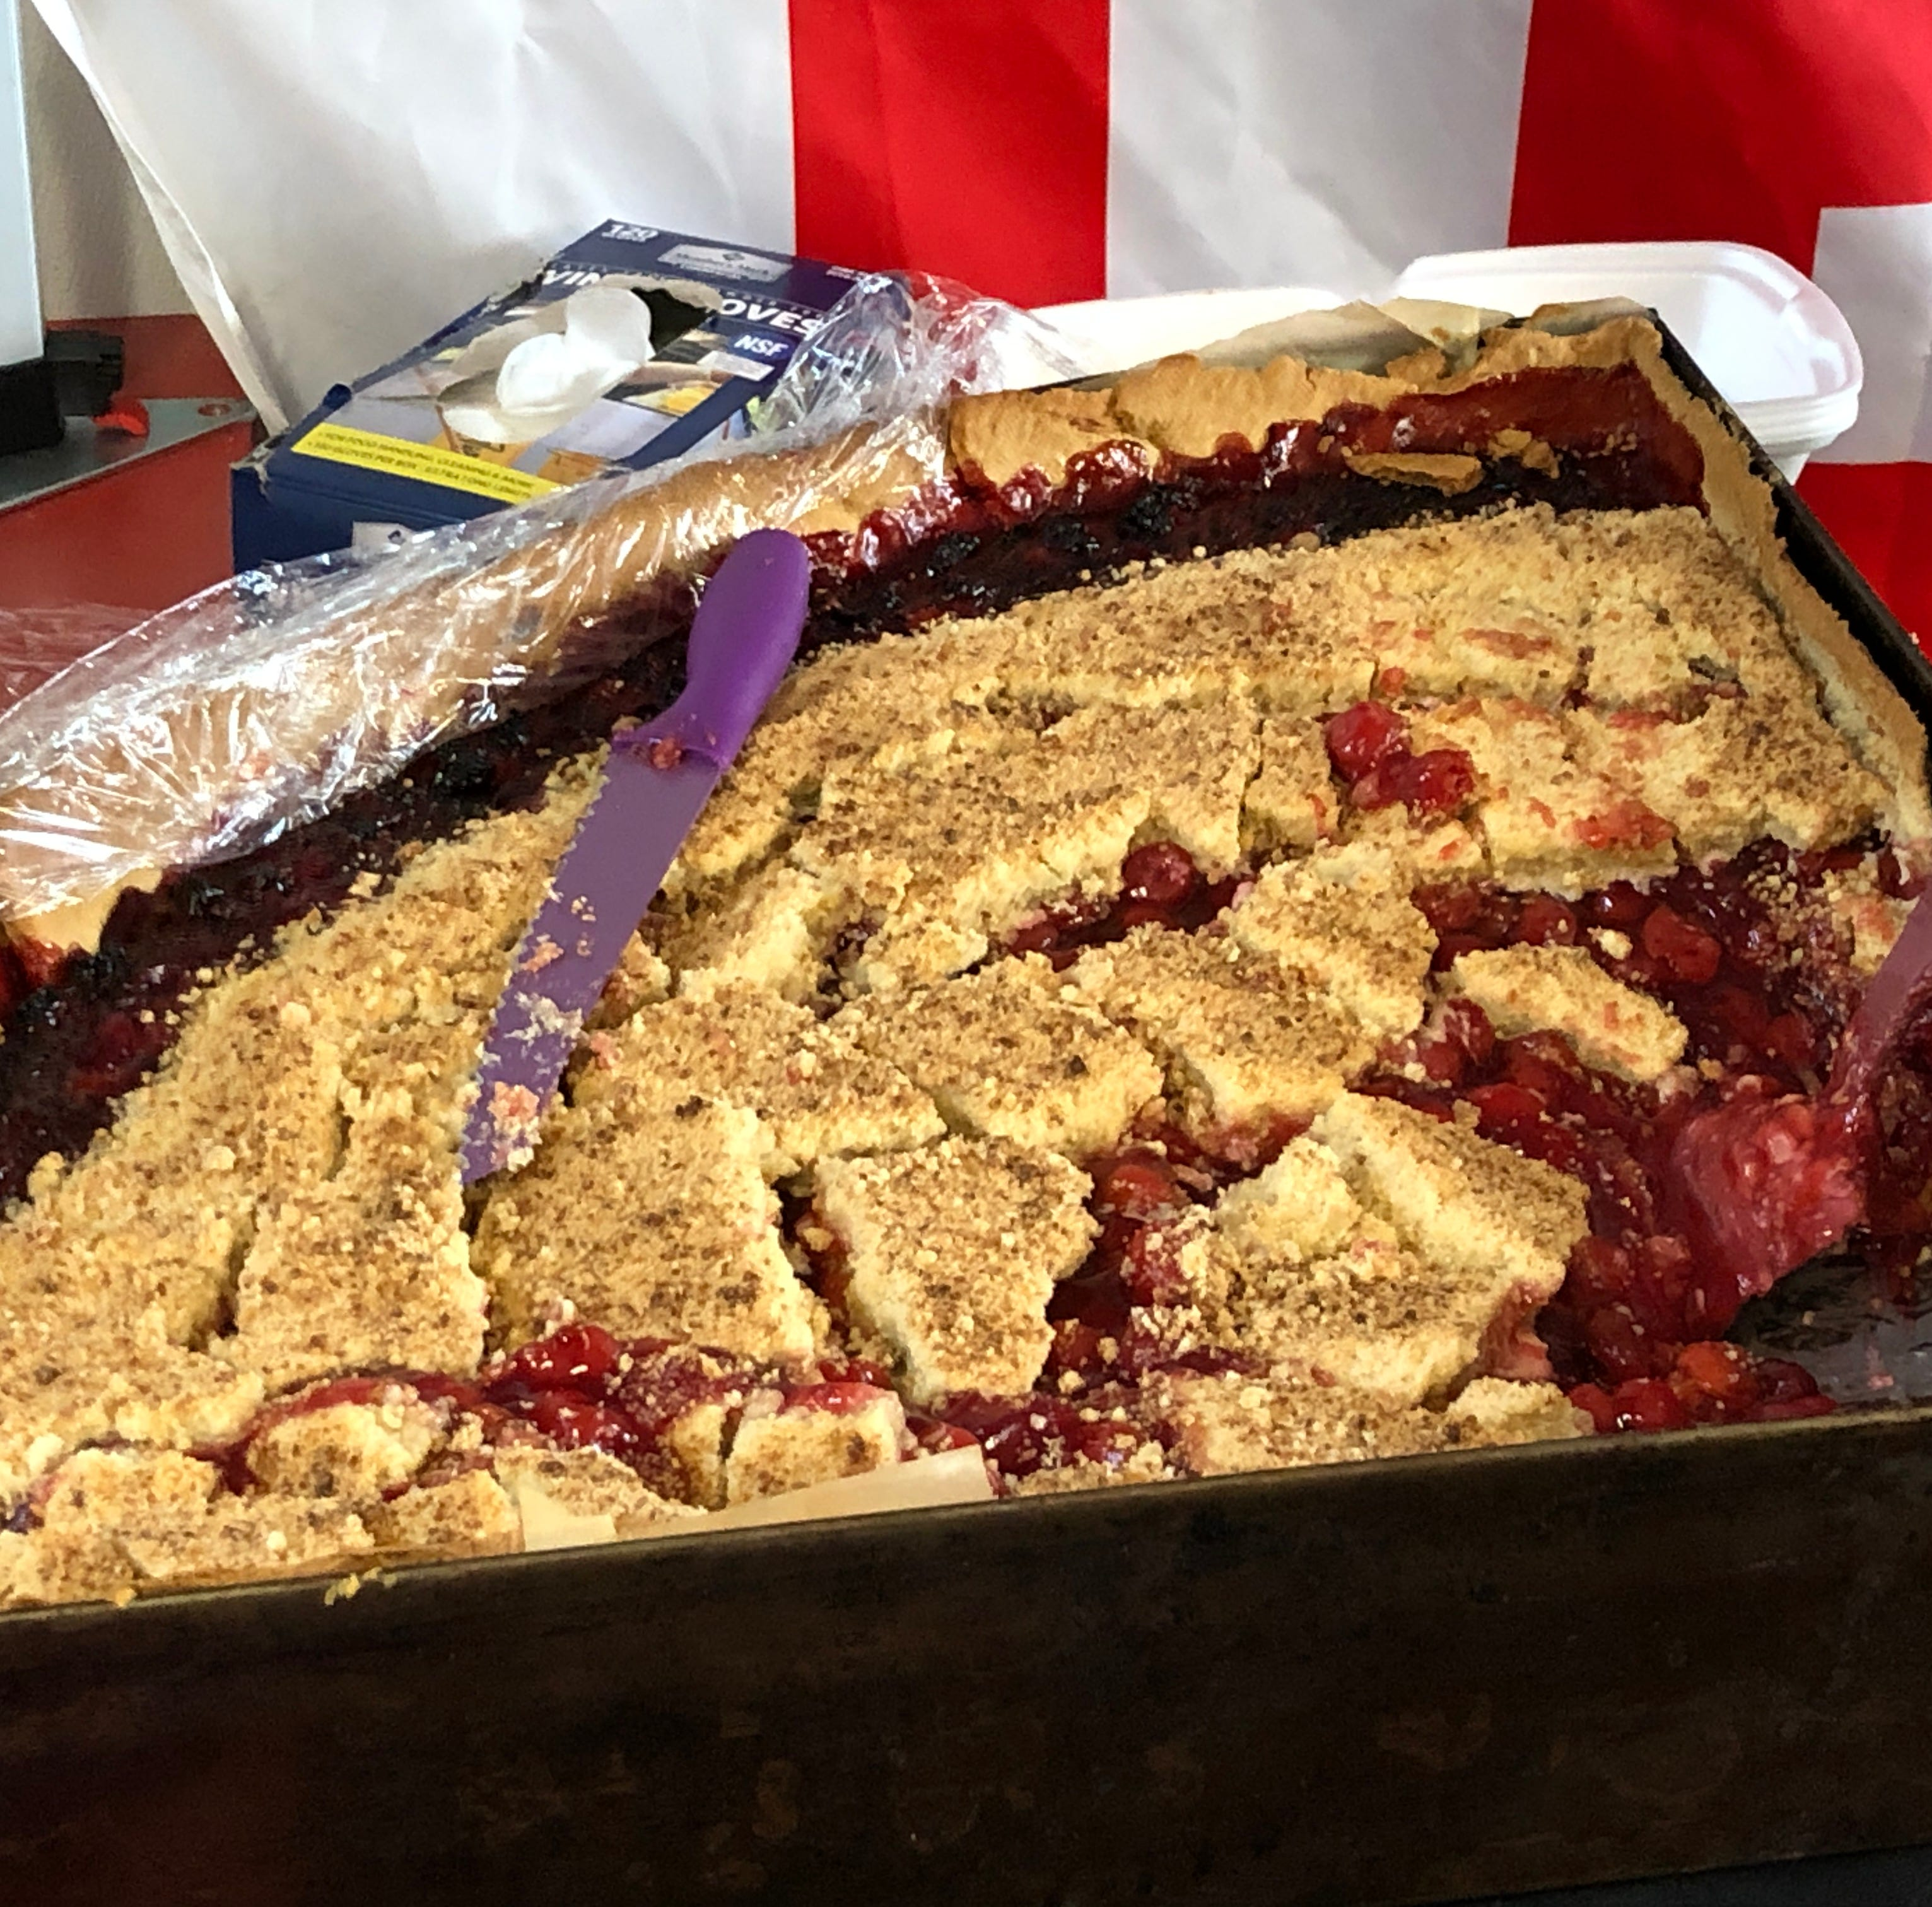 500 pounds of cherry pie sold in Lebanon